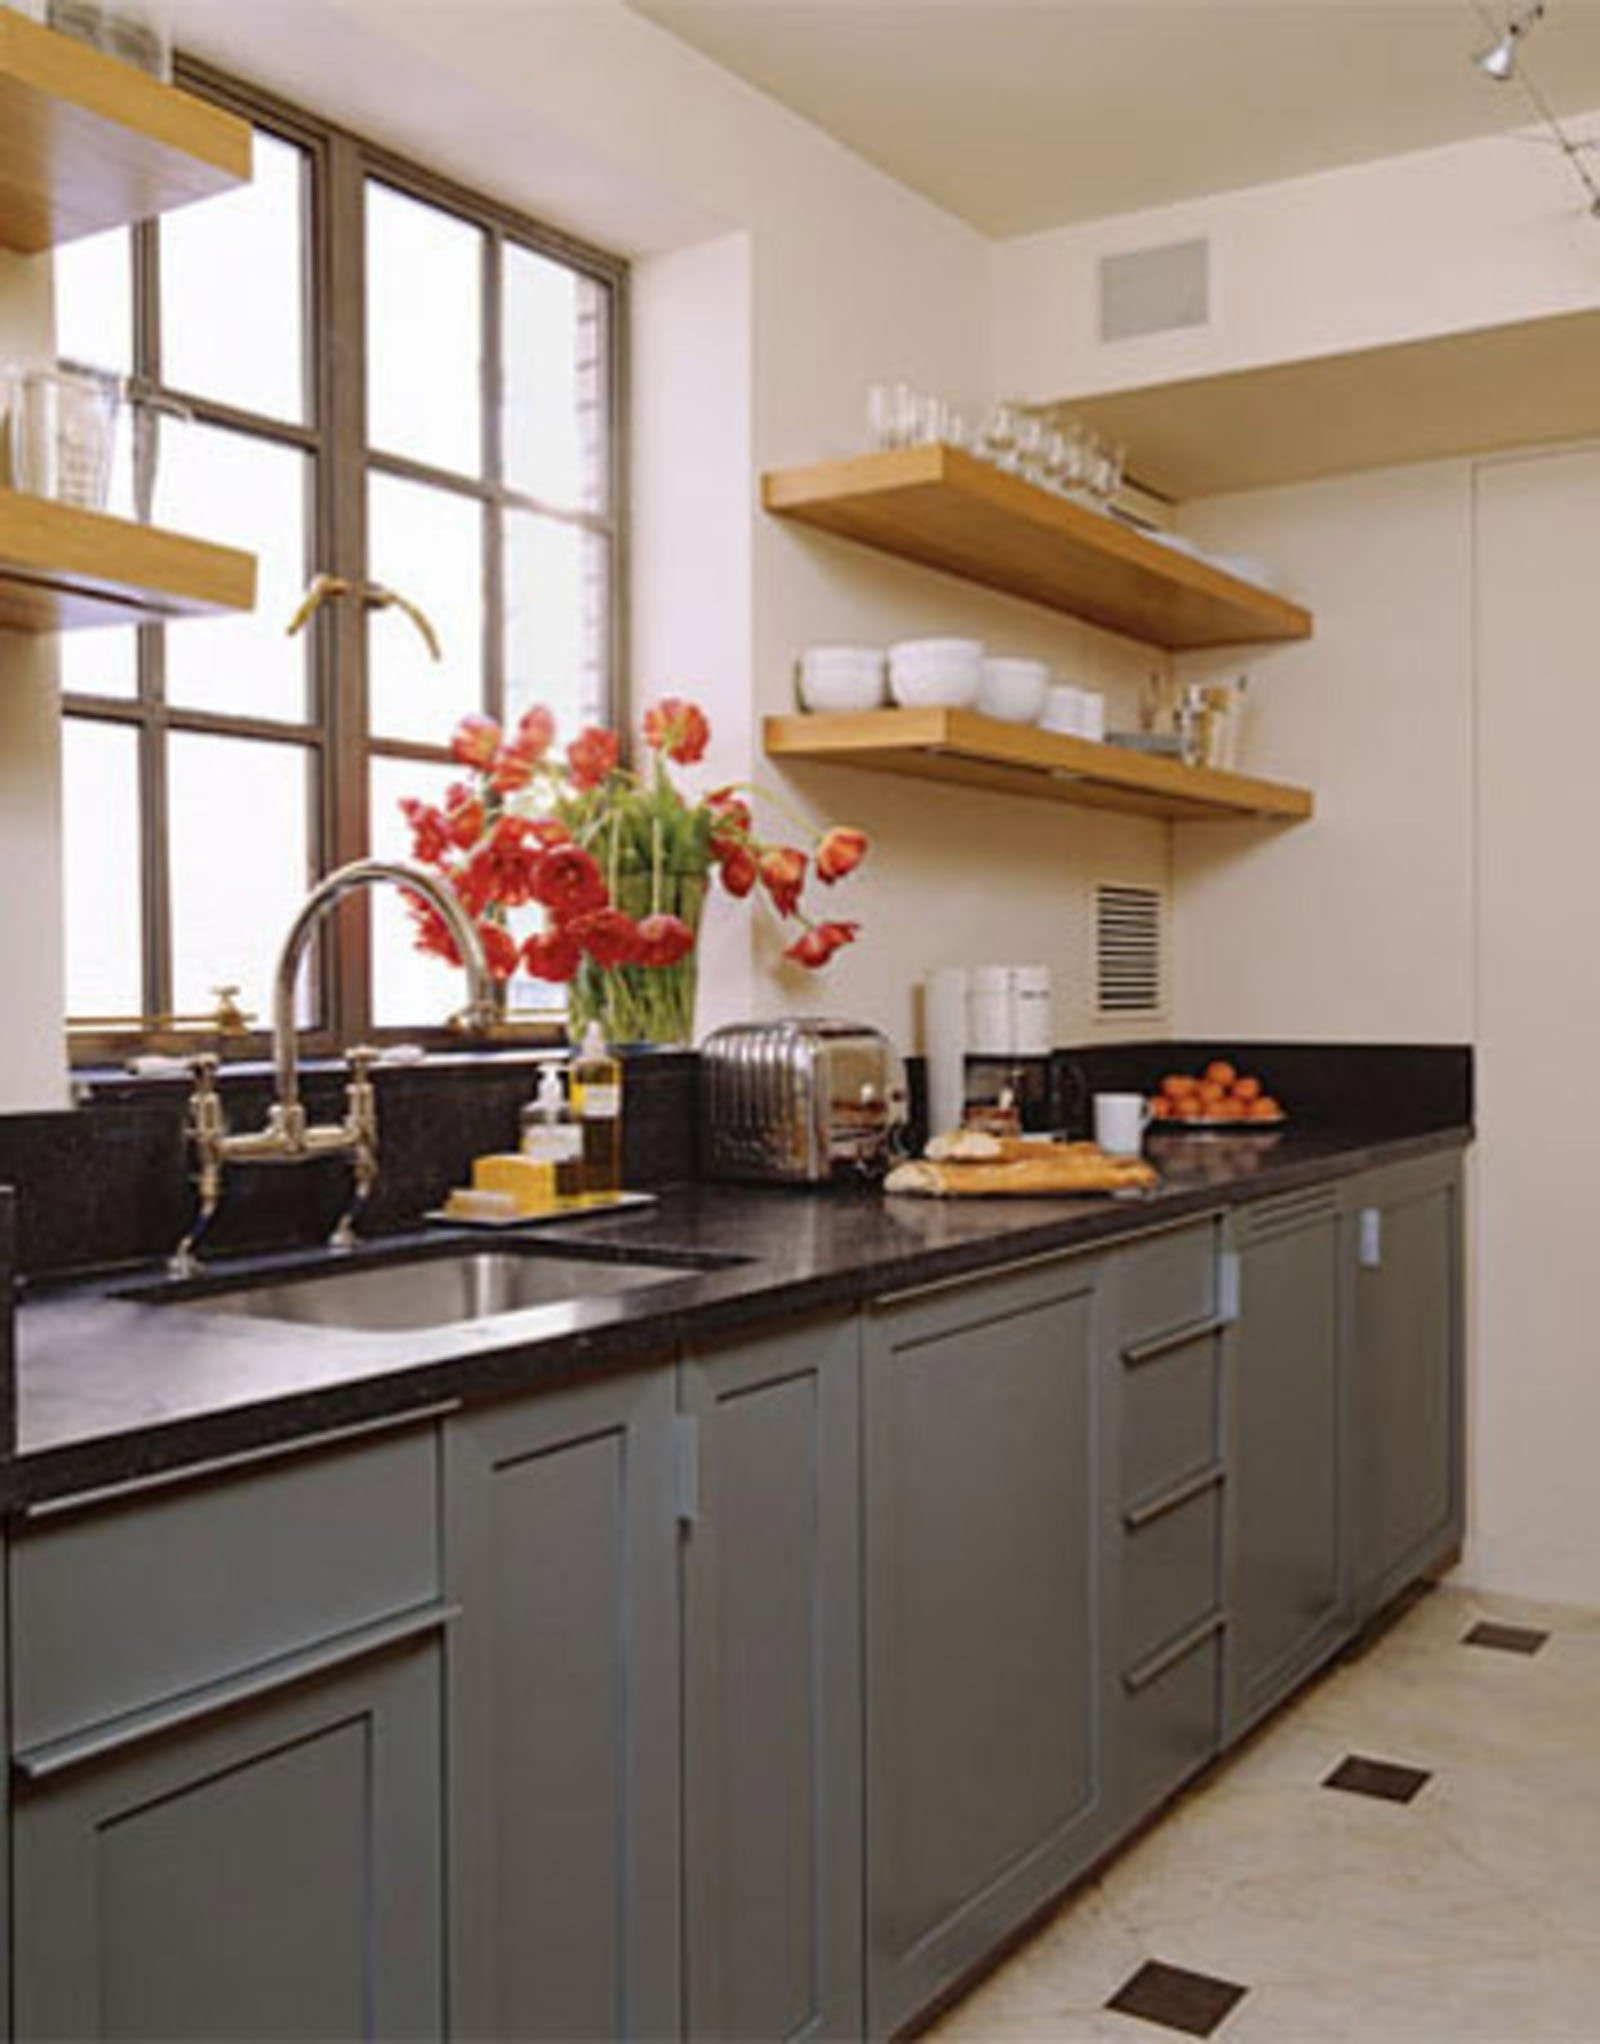 10 Ideal Kitchen Design Ideas For Small Kitchens kitchen design ideas for small kitchens fancy sample designs of 2020